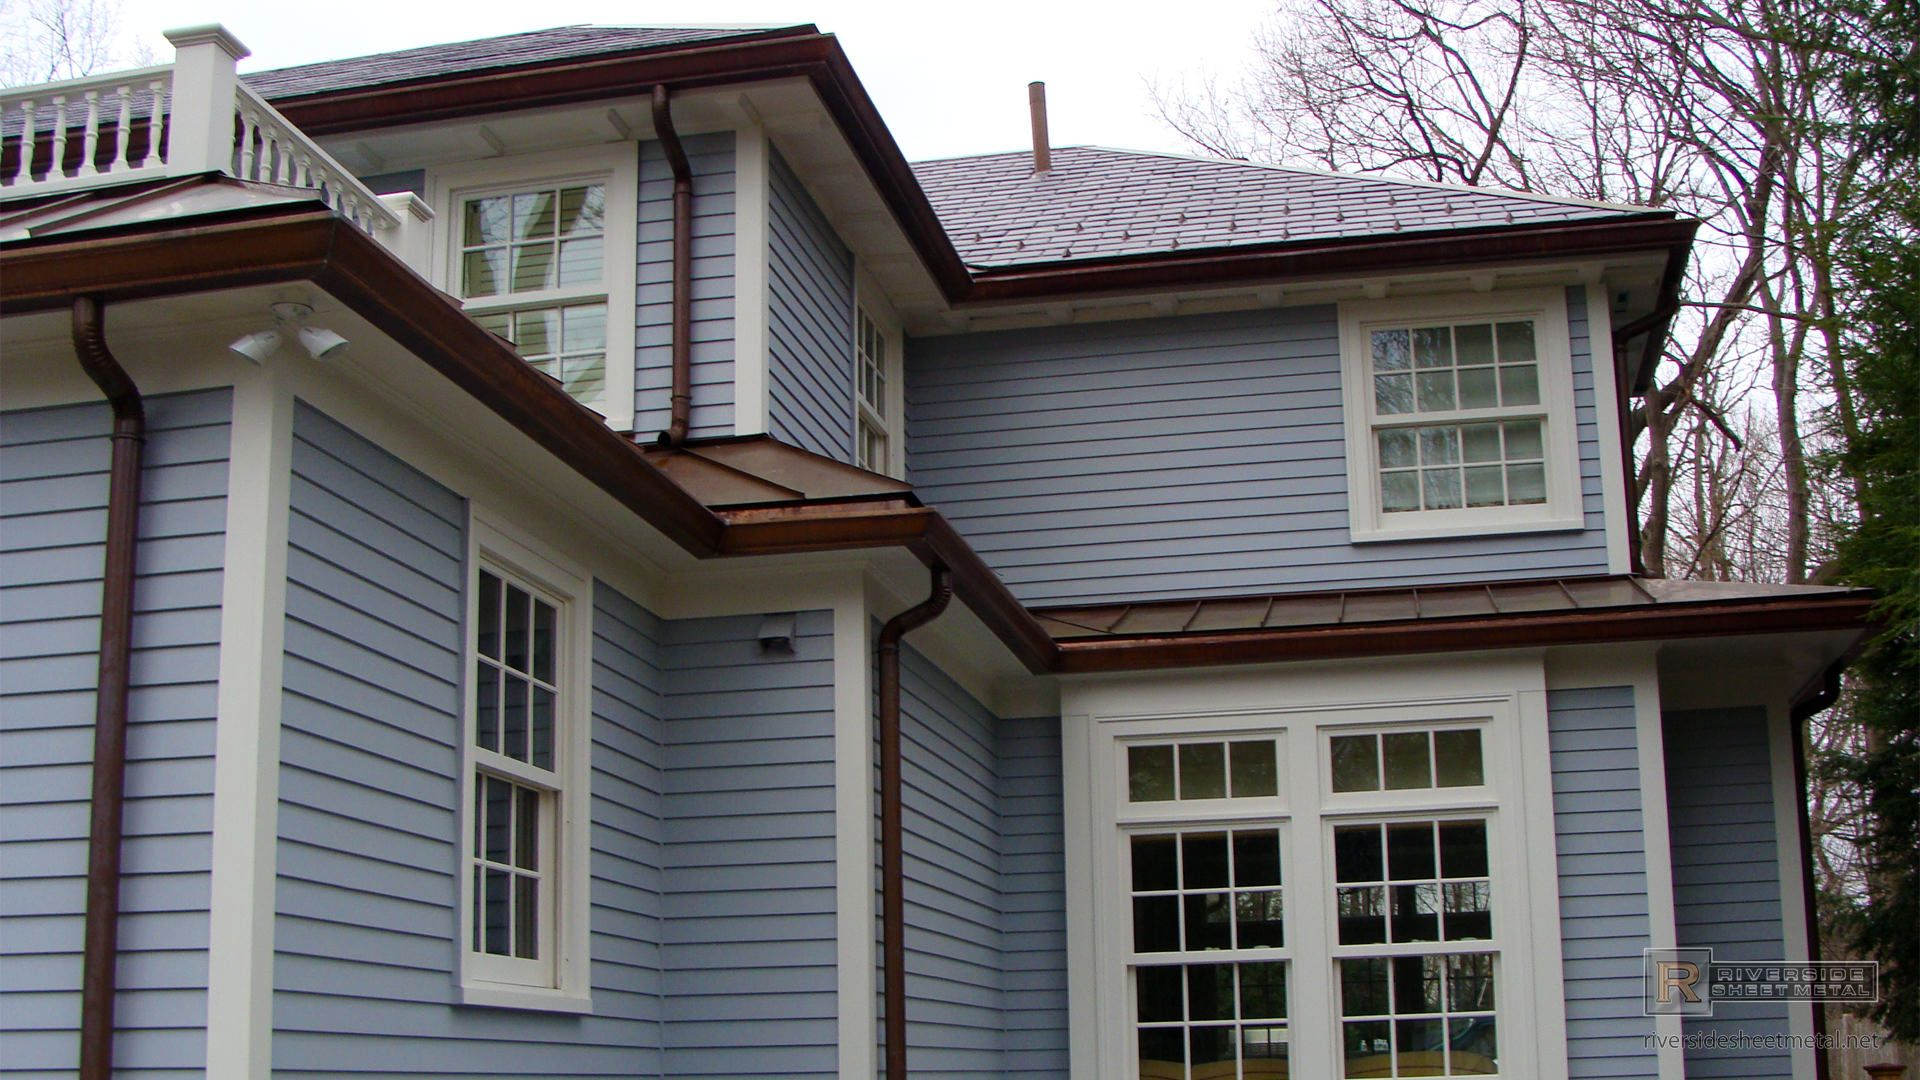 Ogee Gutter Installation In Copper How To Install Gutters Installation Gutter